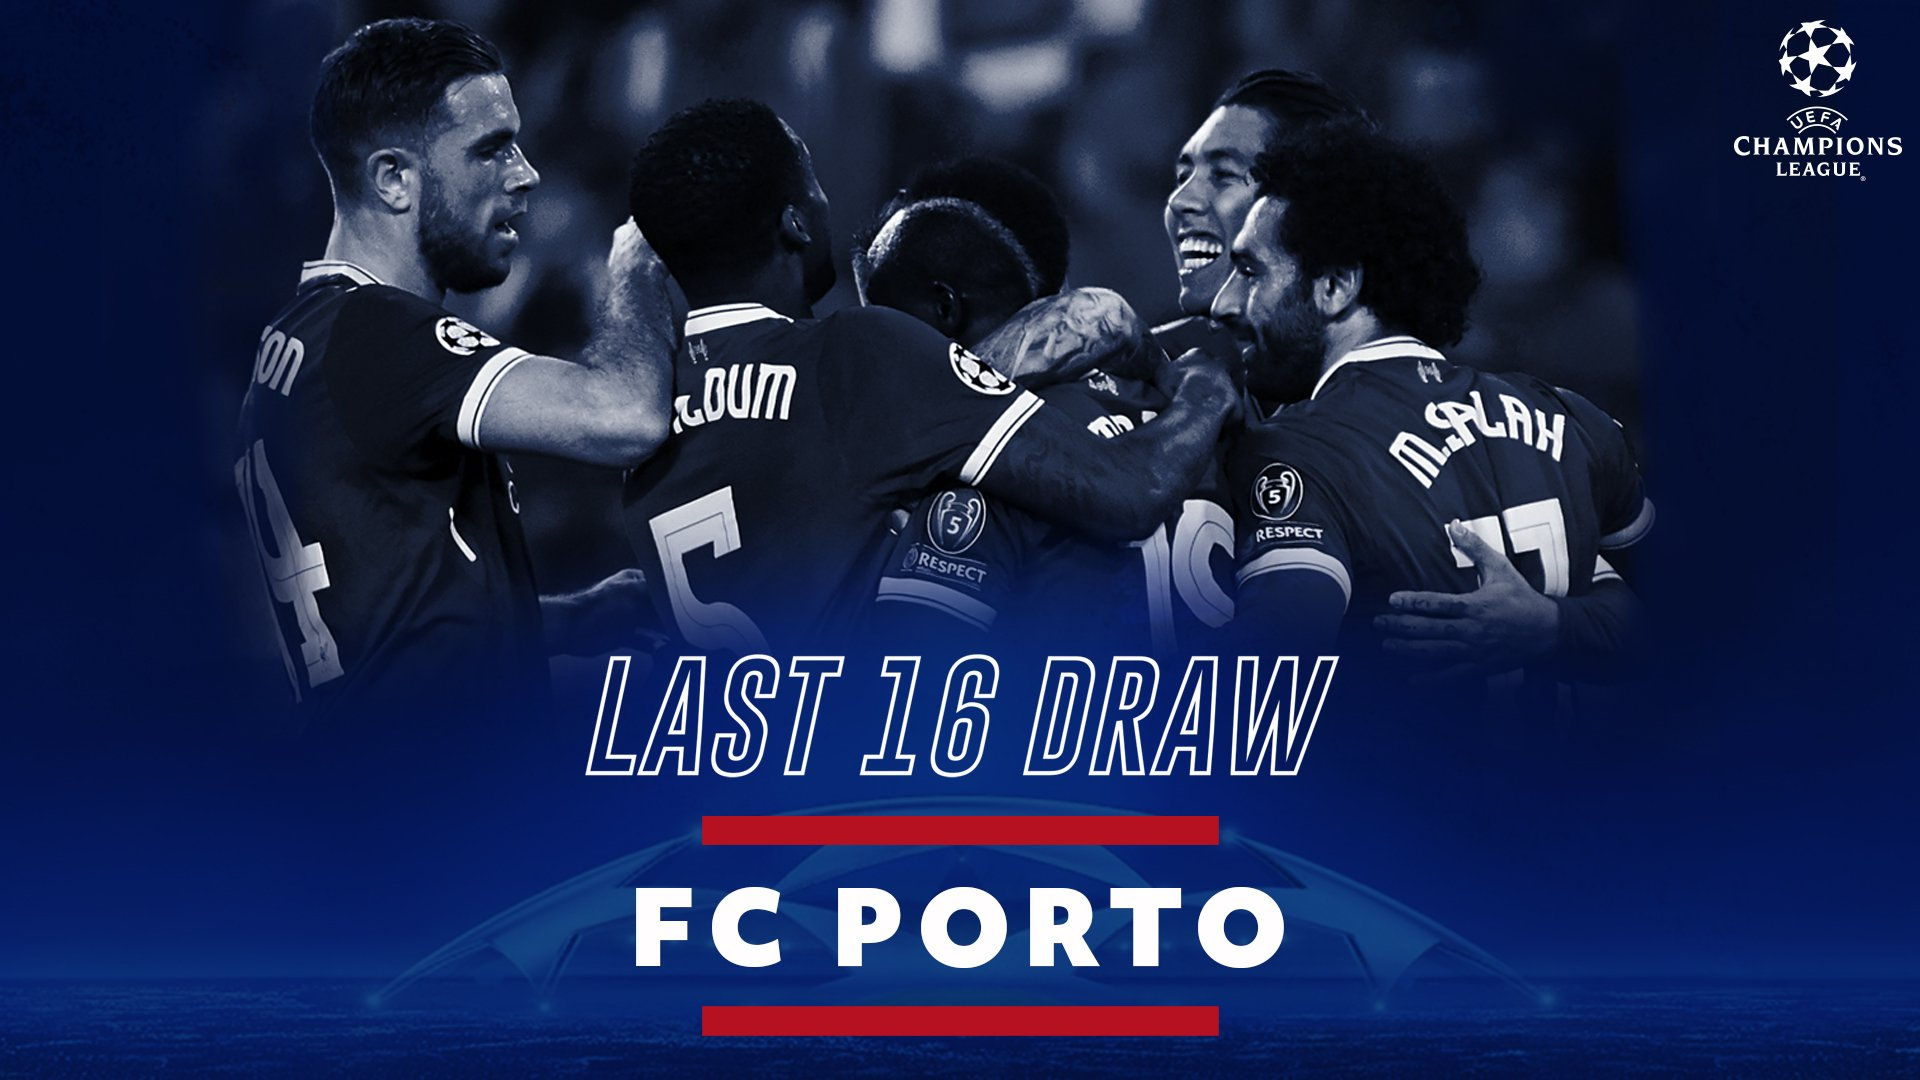 It's FC Porto for #LFC in the #UCL last 16! �� https://t.co/bI5mgFiMtn